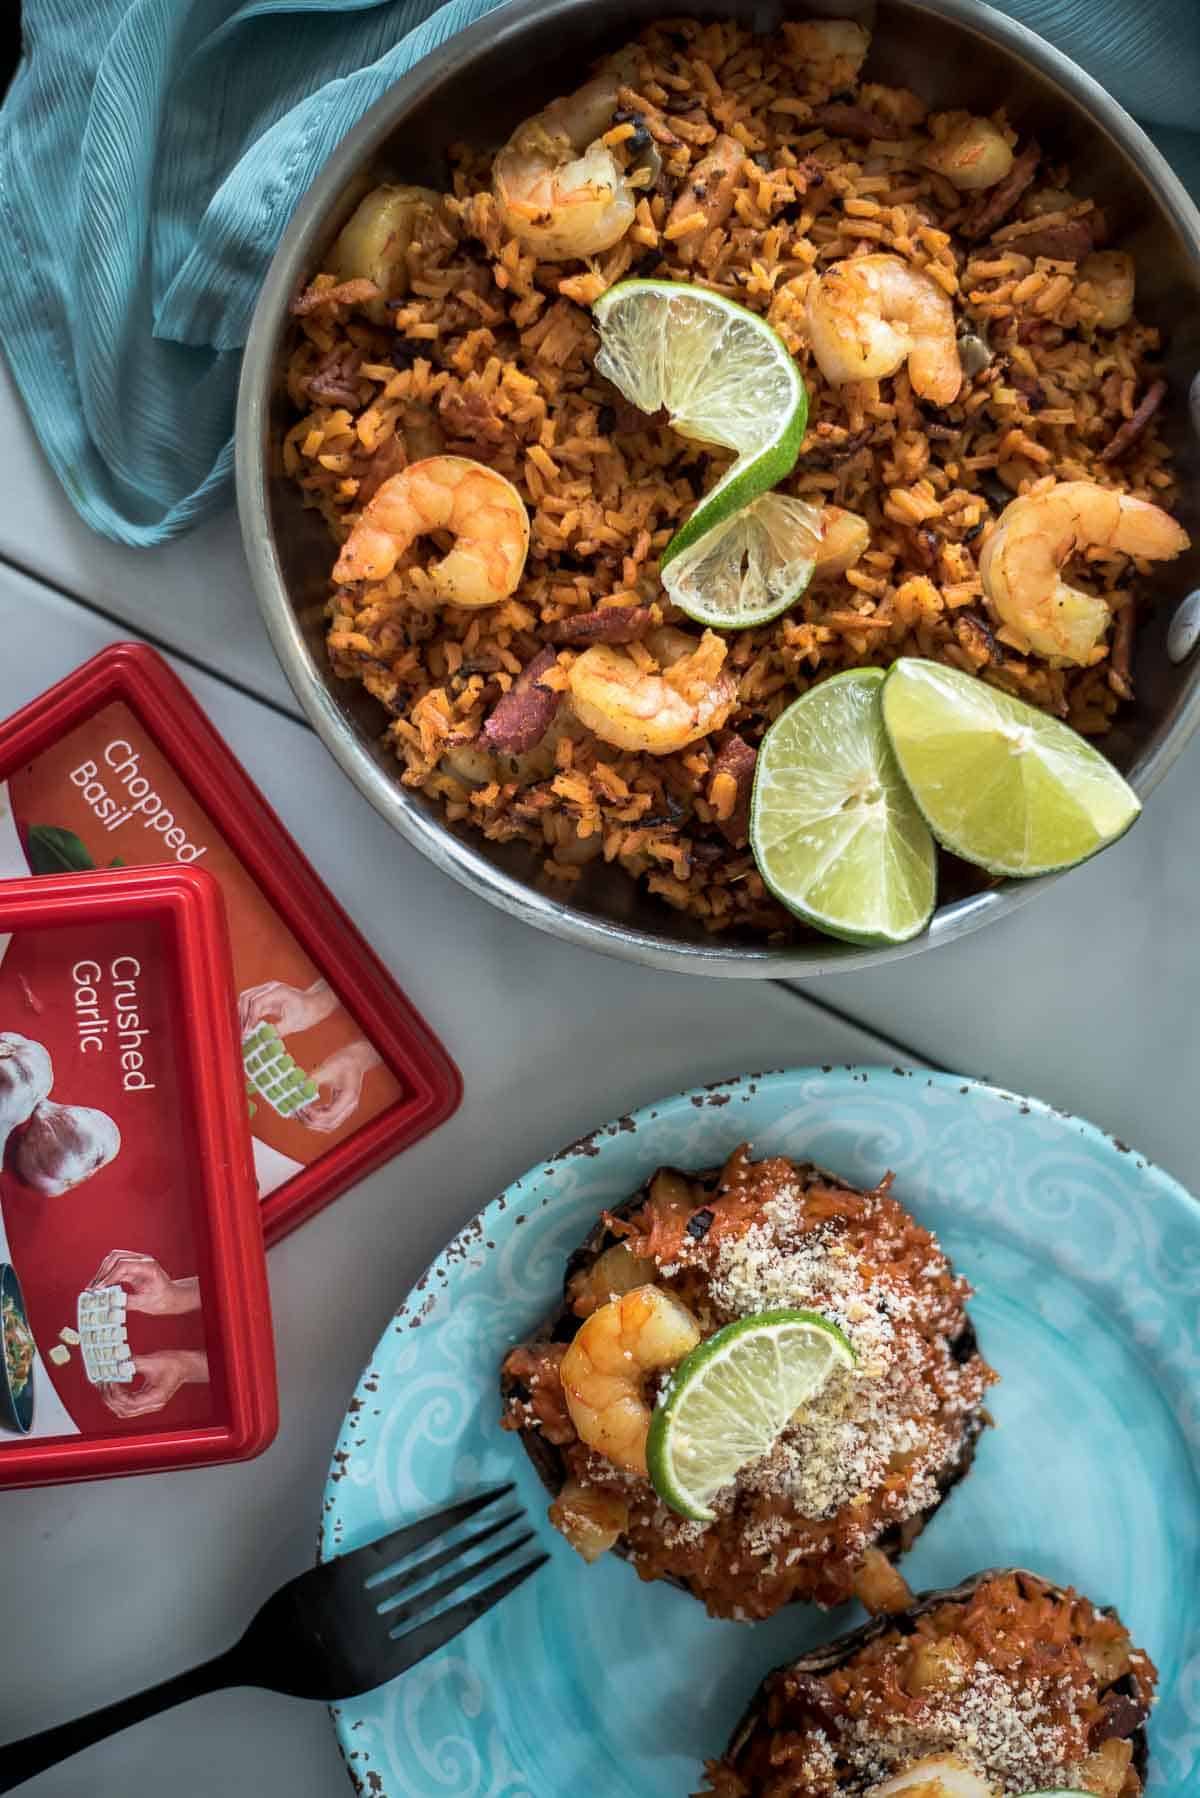 Jazz up your weeknight dinner with these Easy Paella Stuffed Portobello Mushrooms! Perfect 30-minute shrimp & chorizo paella baked inside giant, satisfying mushroom caps is a great way to increase veggies and decrease starches.